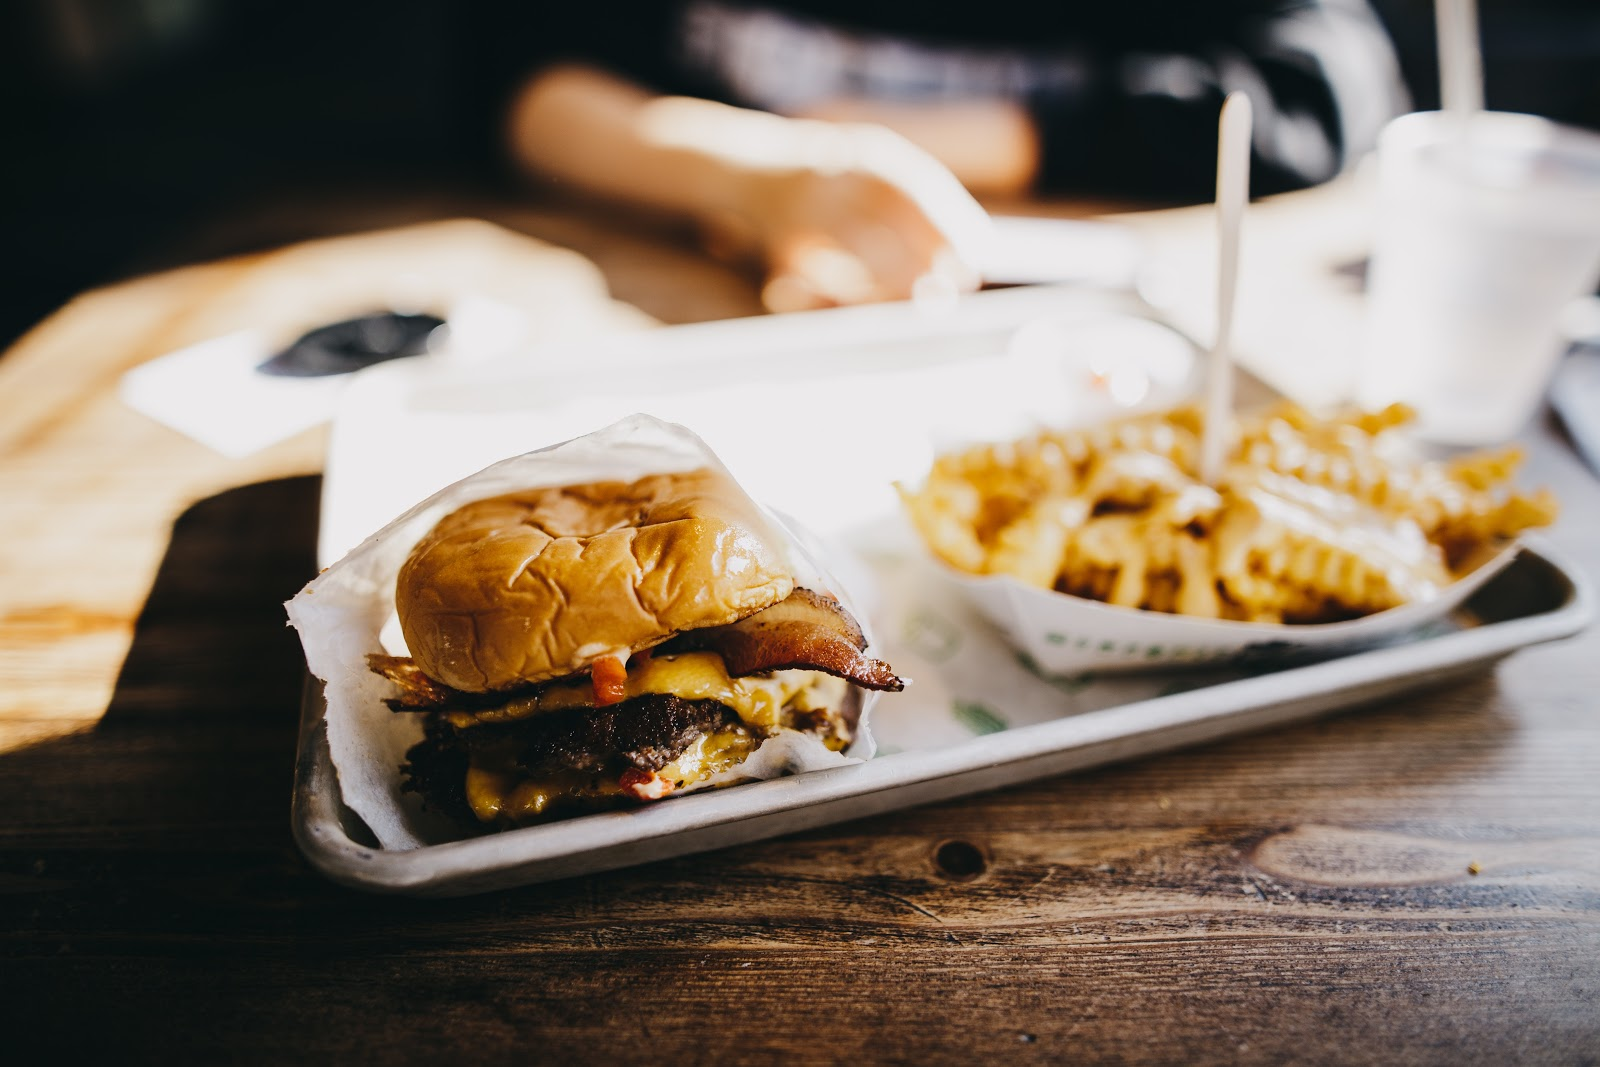 Gut rot: A tray with a burger and fries